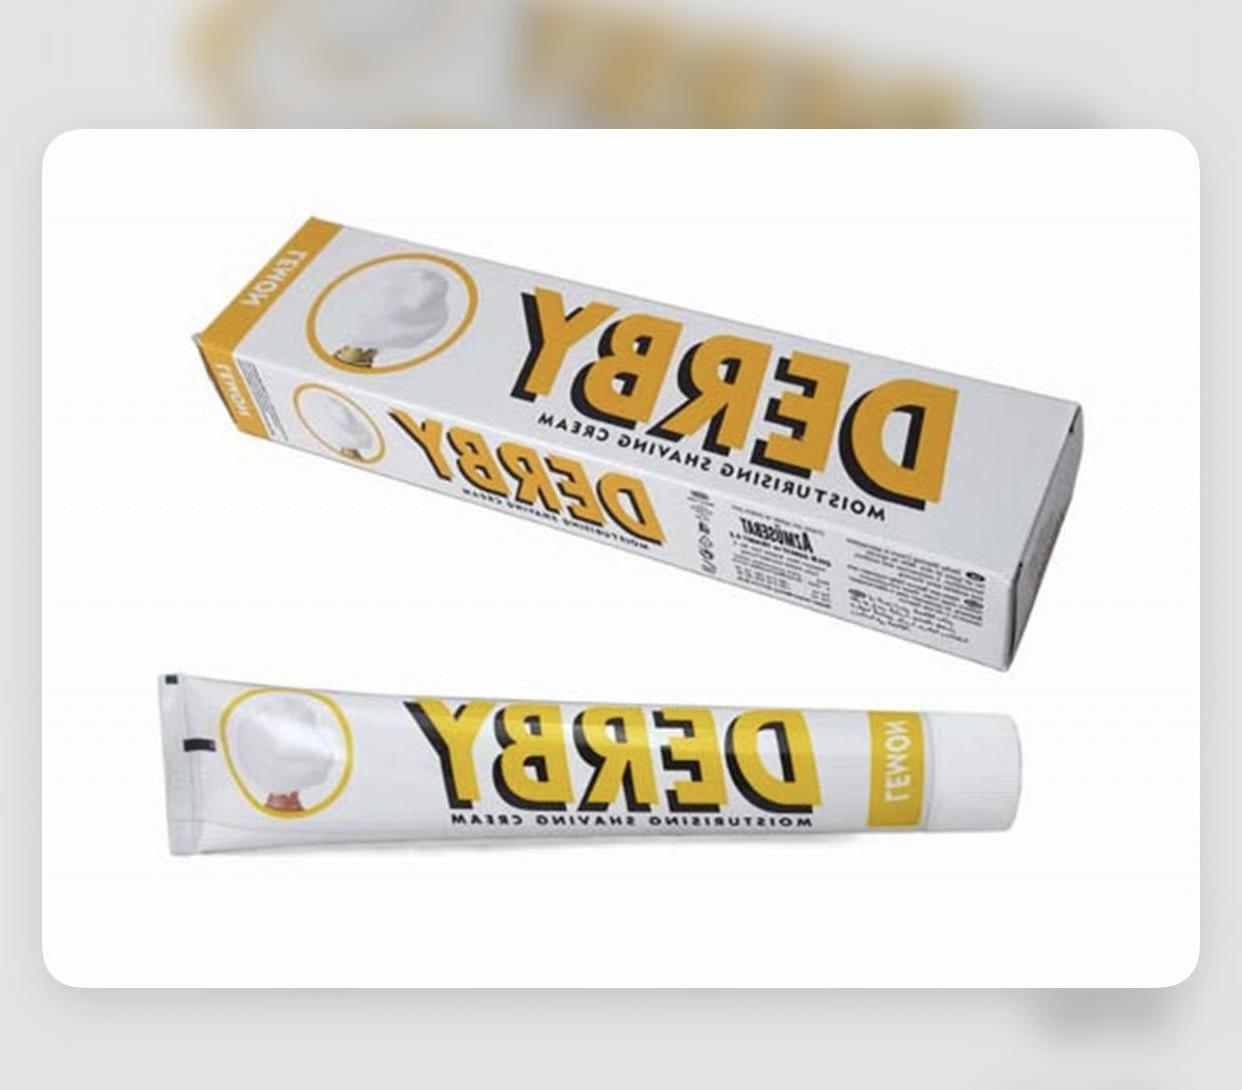 Derby Cream in a Tube 3.5oz - Menthol to